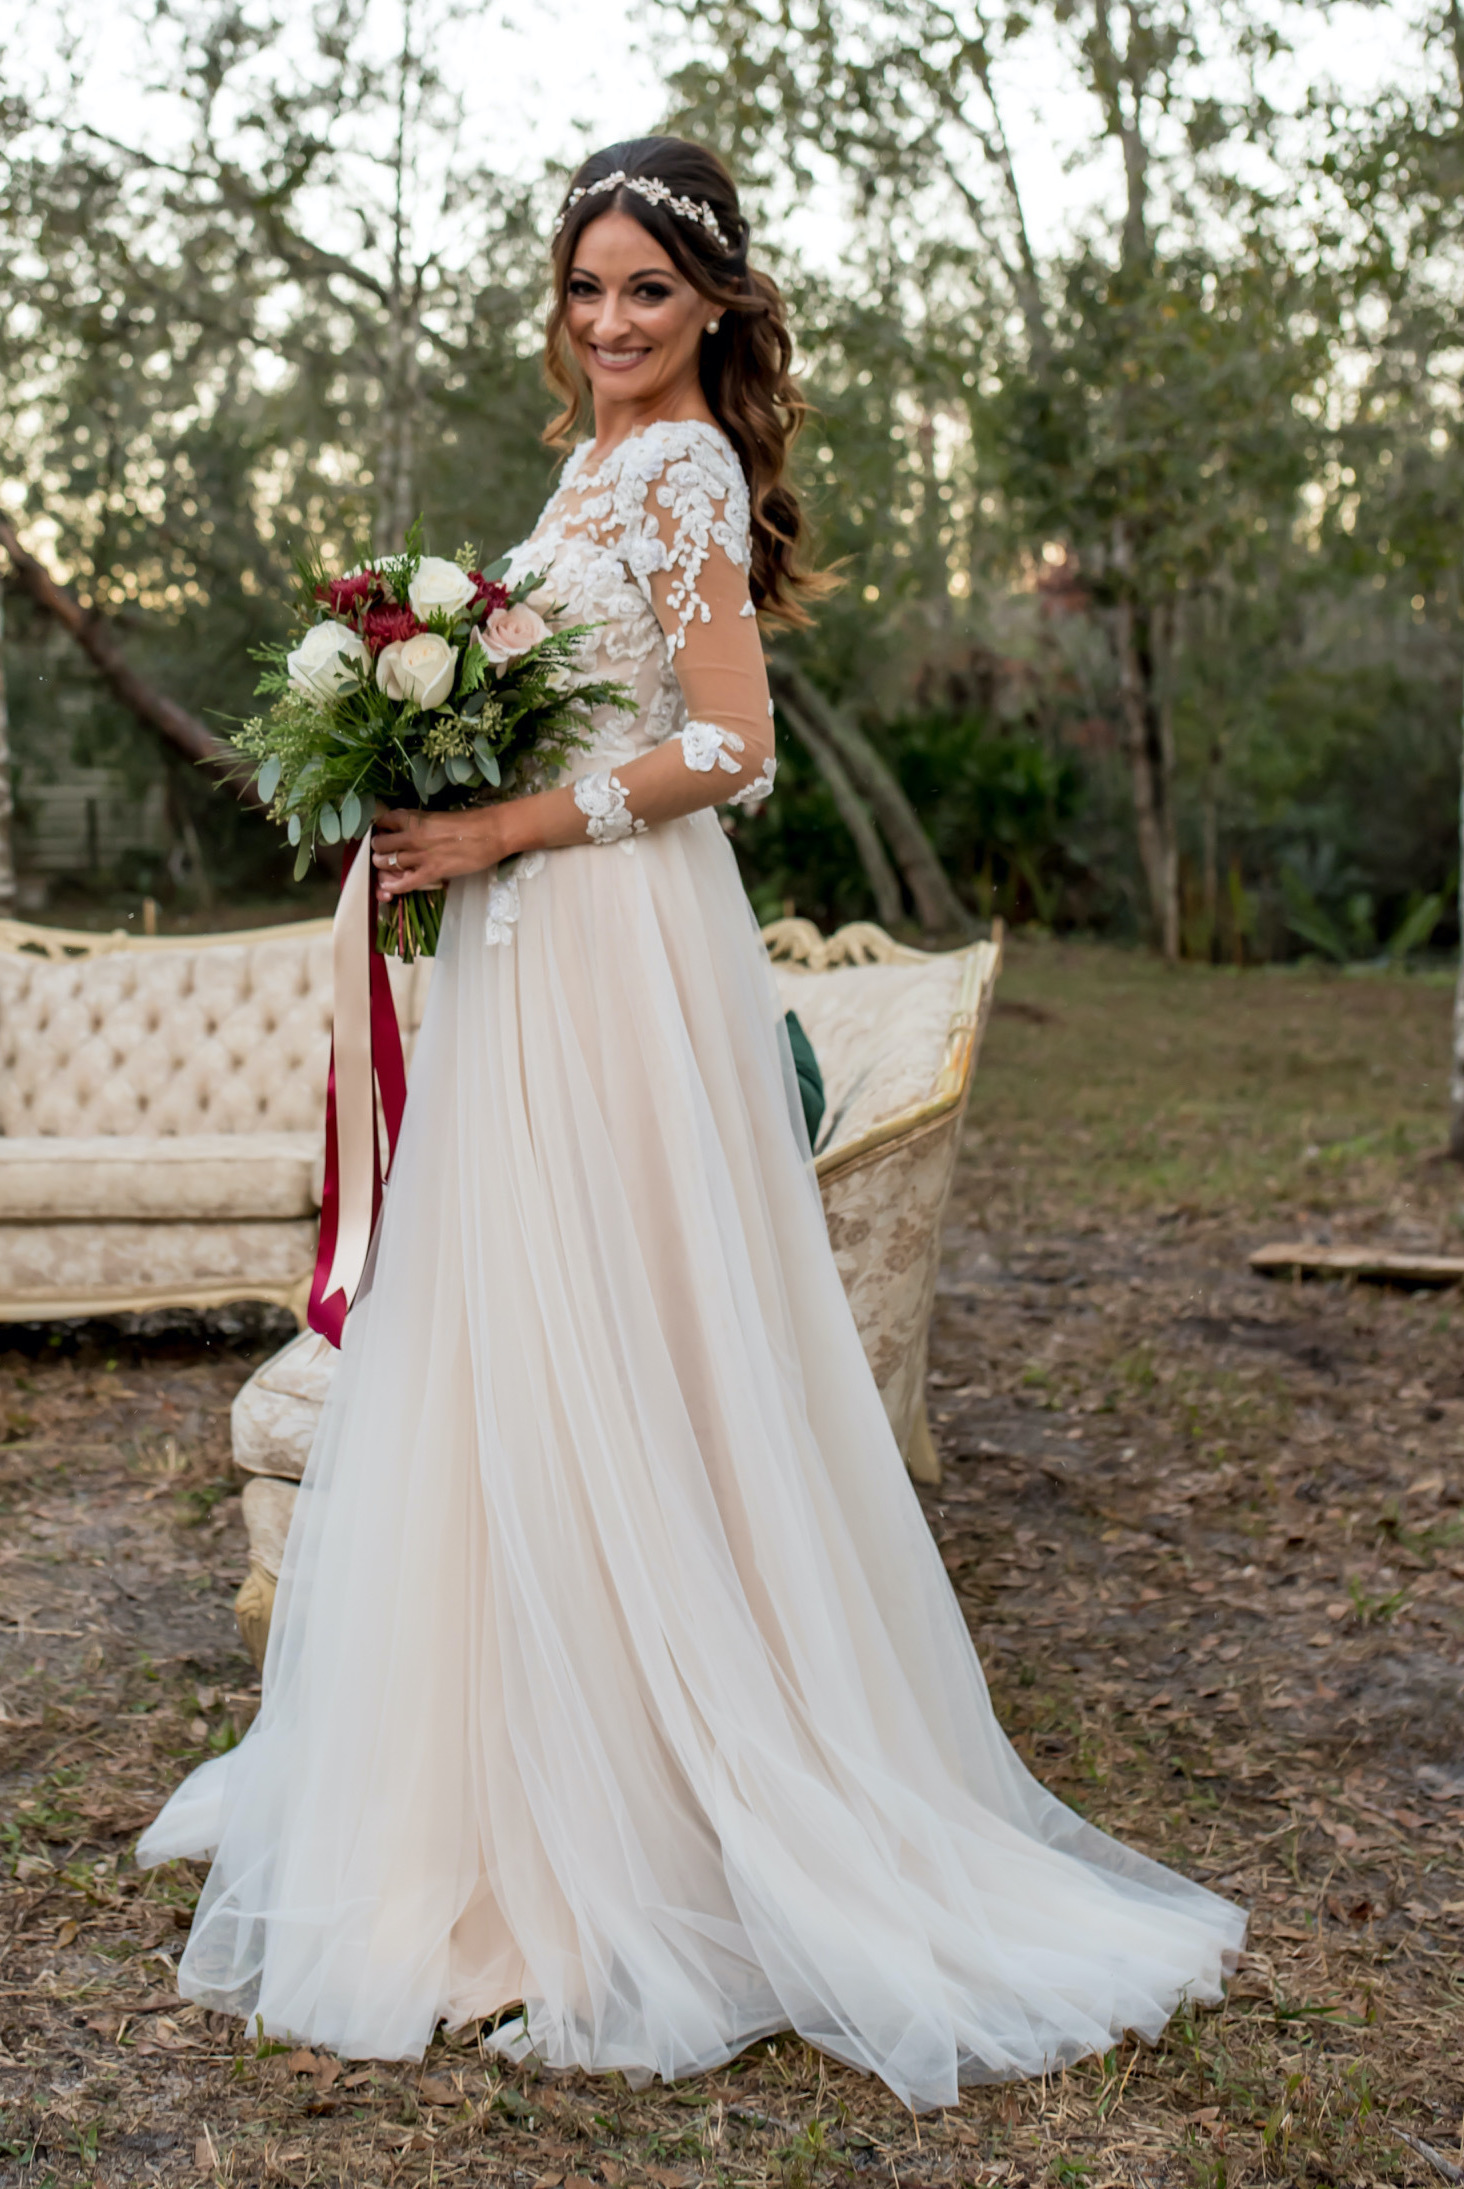 Bride customized her wedding dress with Anomalie Online Wedding Dresses with skin toned illusion mesh, long sleeves, and blush fabric.